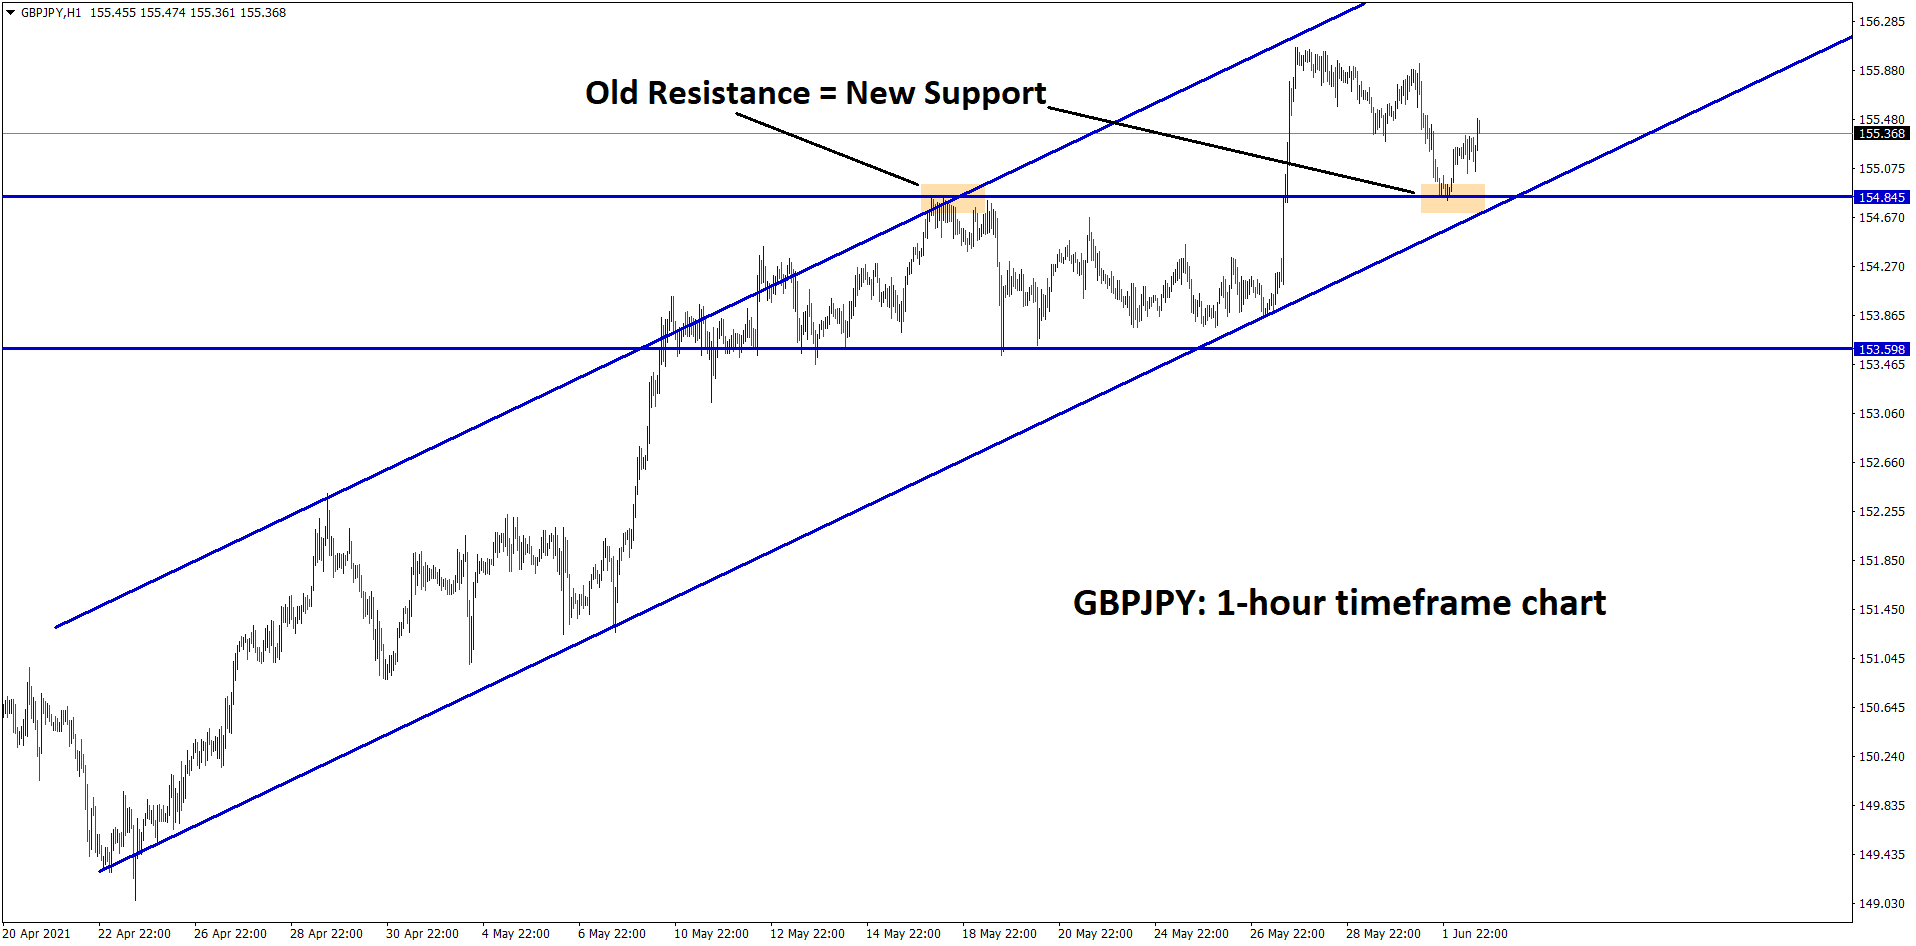 GBPJPY moving in an uptrend recently market has retested the broken previous resistance which act as a new support now.